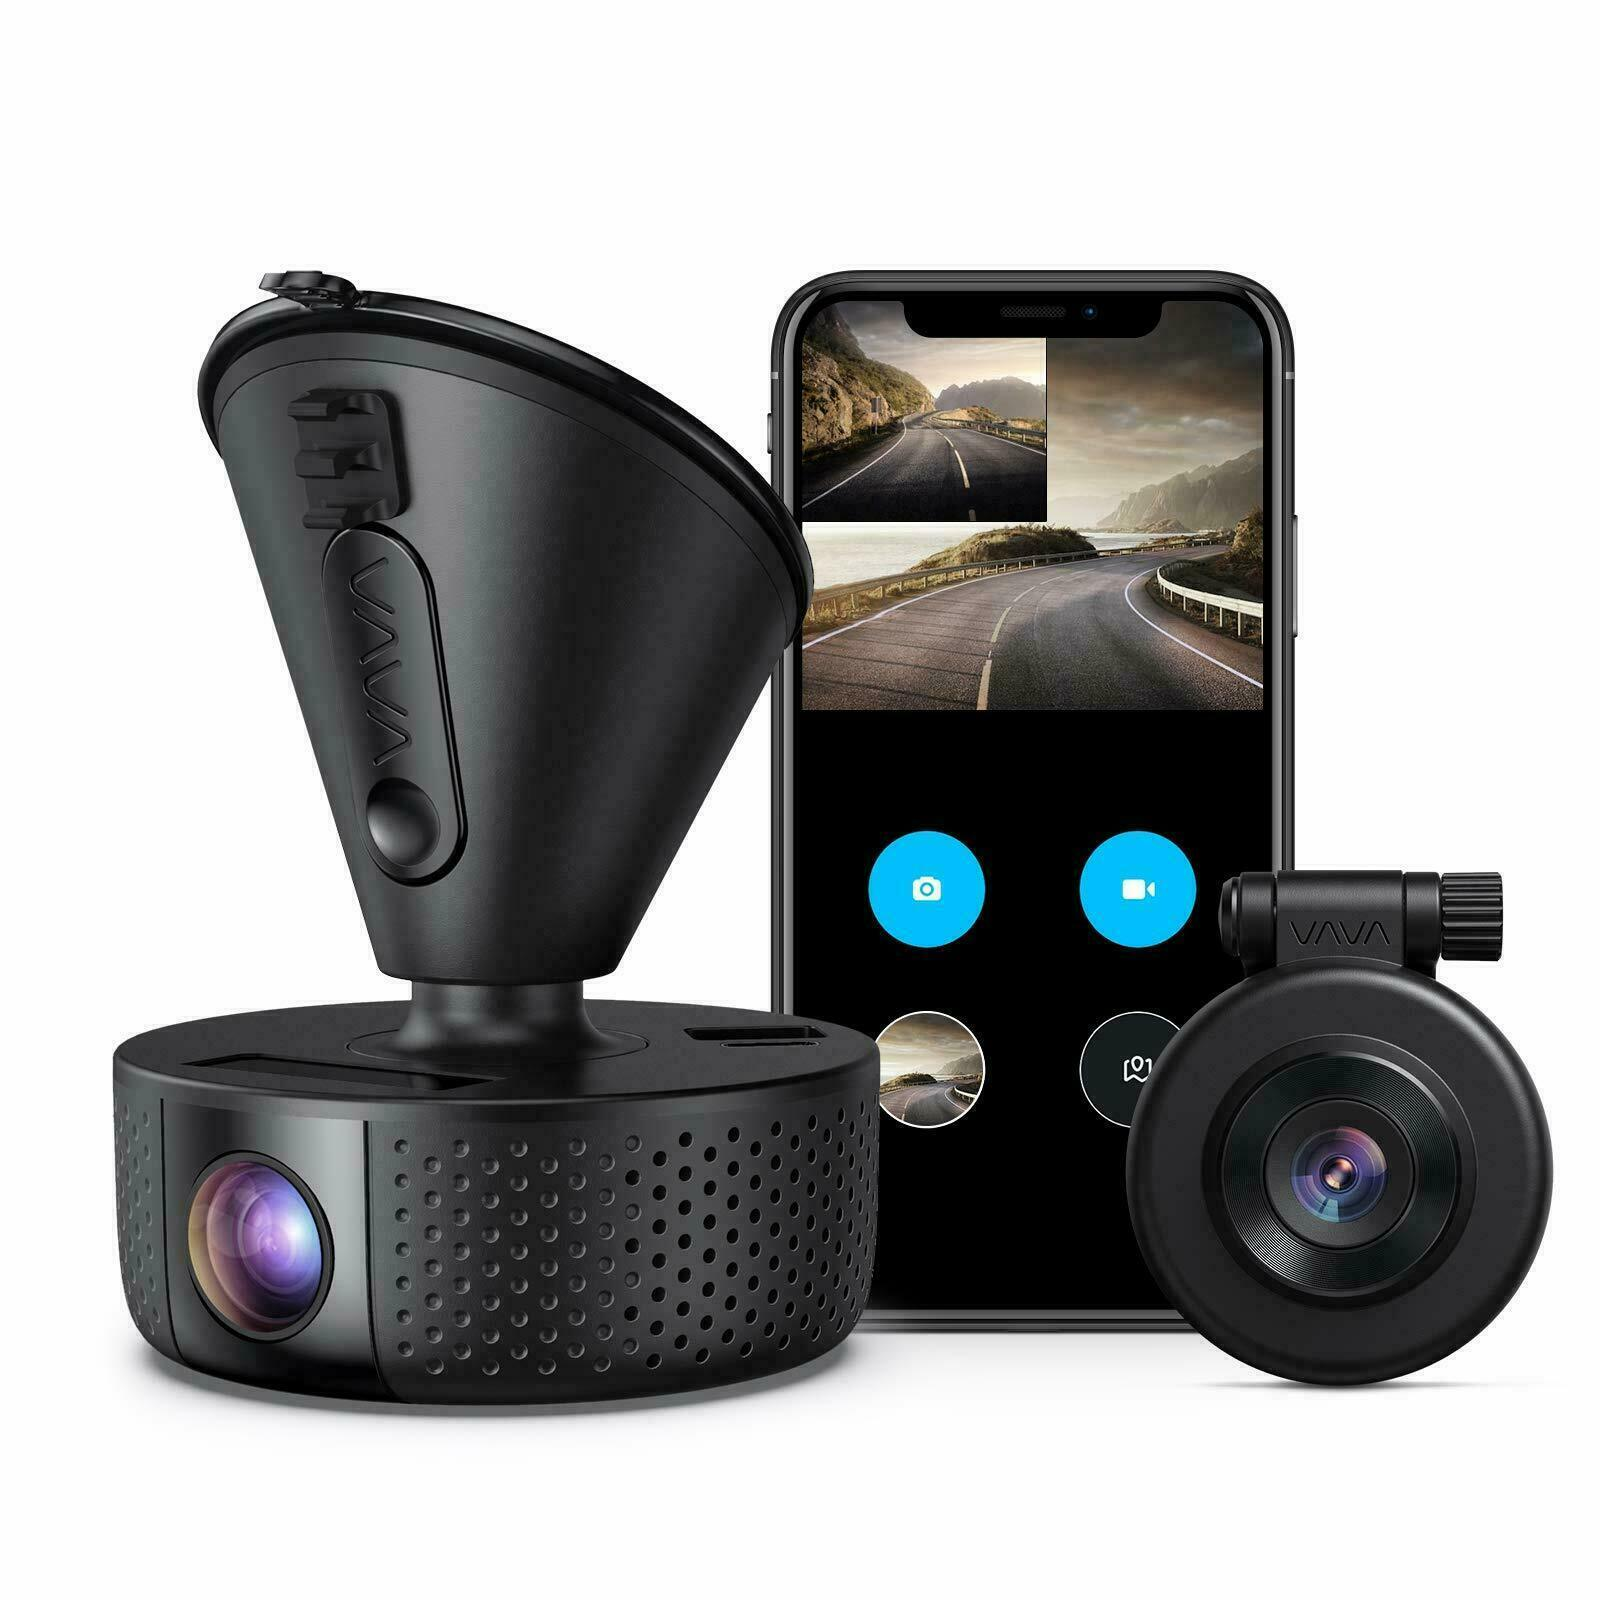 Dual Dash cam VAVA Dual 1920x1080P FHD Front and Rear Dash Camera 2560x1440P ... 1920x1080p and cam camera dash dual Featured fhd front rear vava